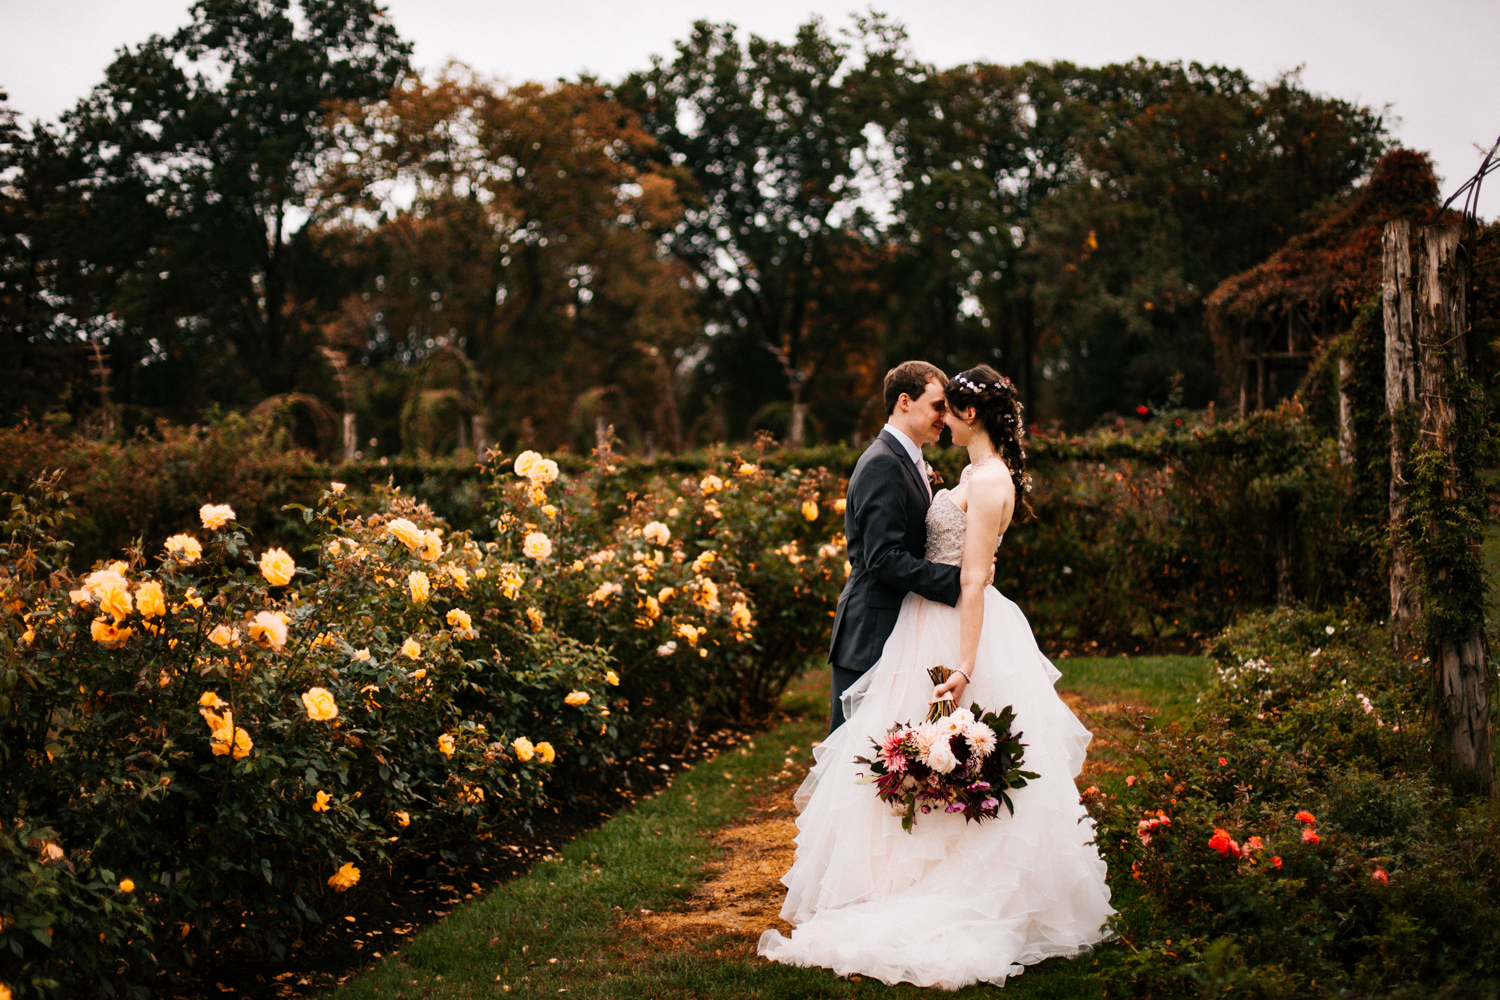 rose-garden-wedding-elizabeth-park-connecticut-new-england-boston-photographer-autumn-wedding.jpg